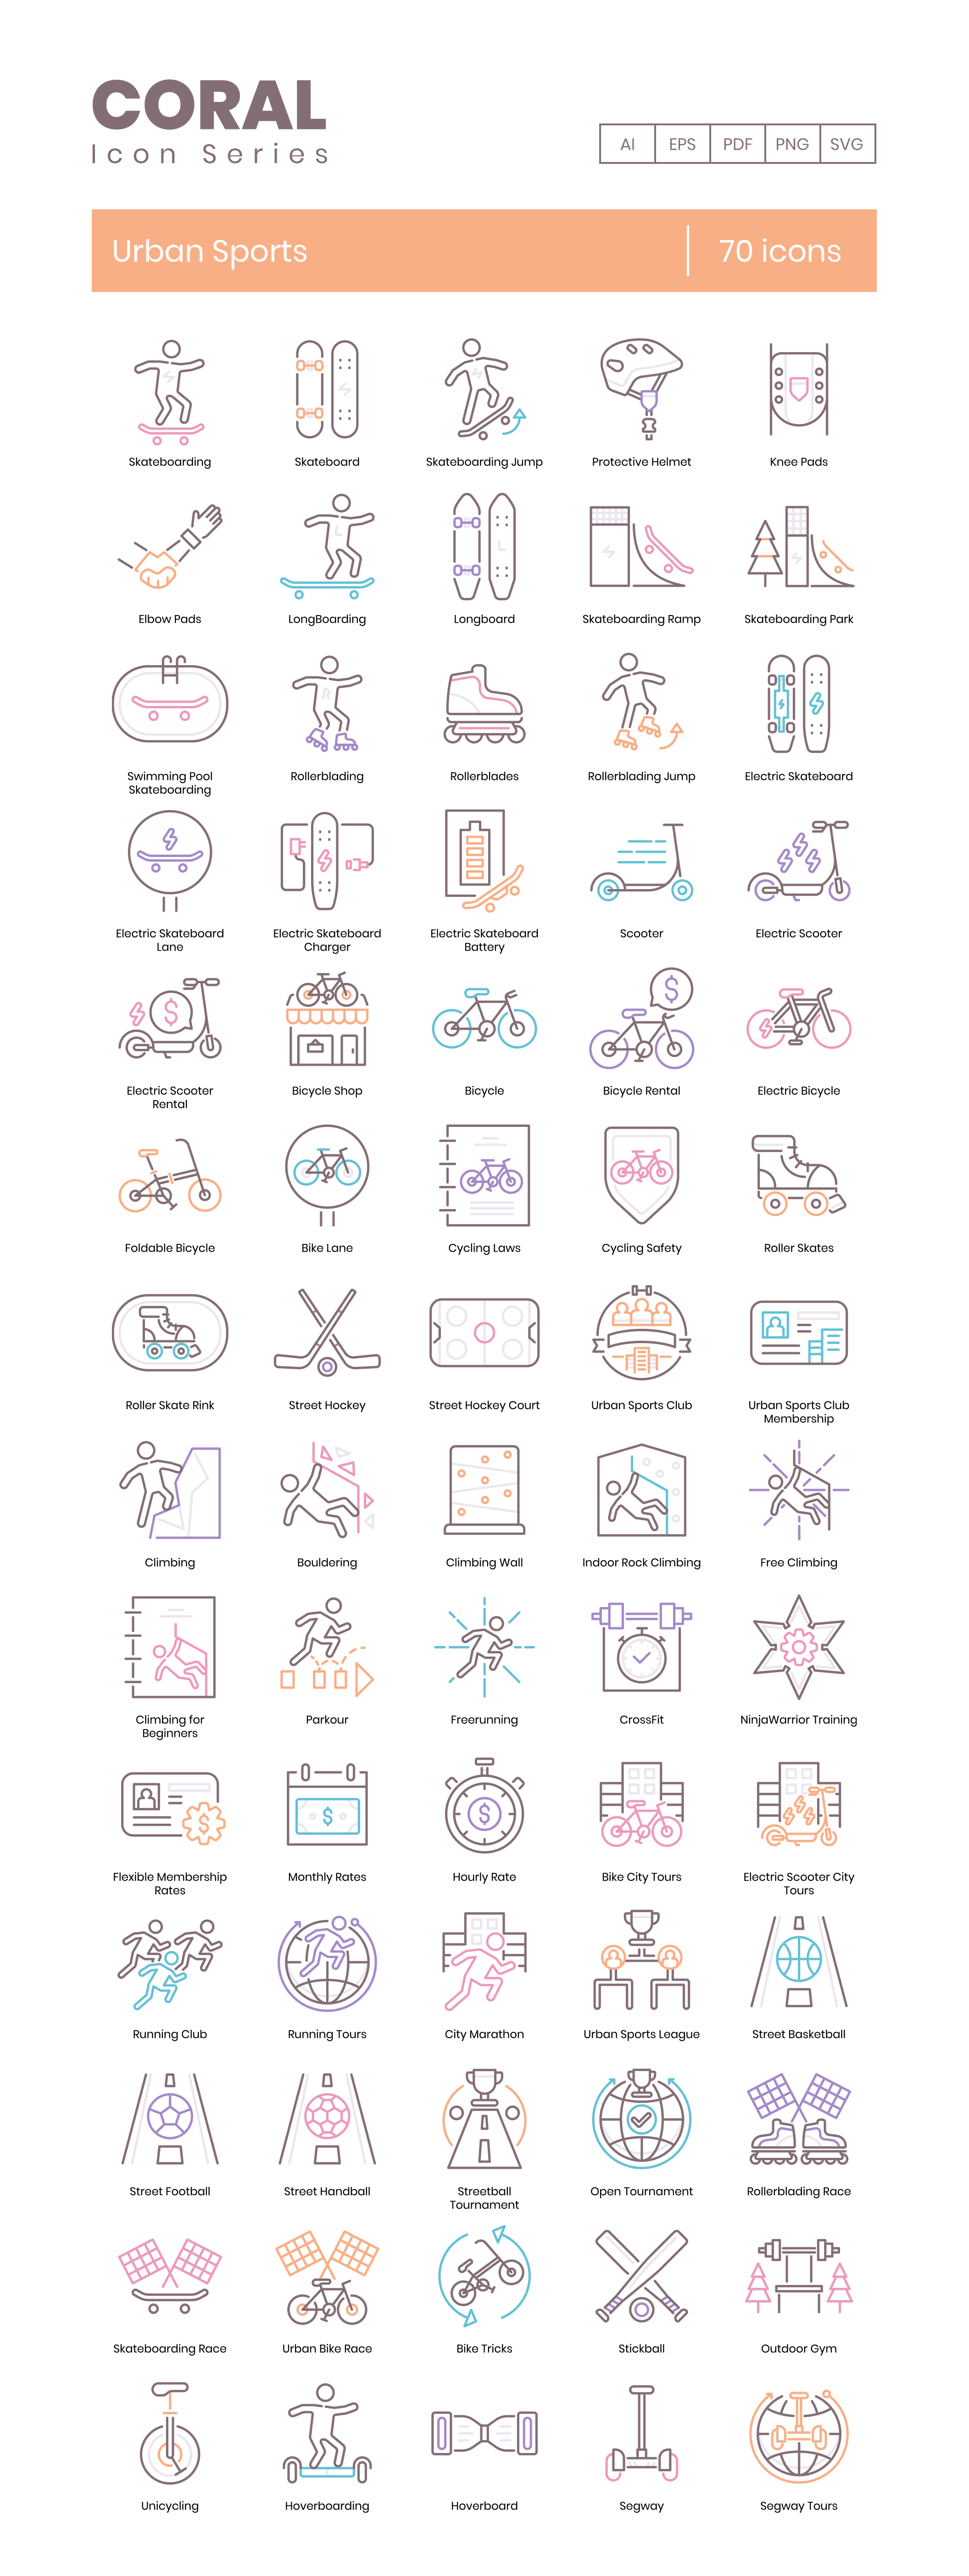 Urban Recreation Vector Icons Preview Image